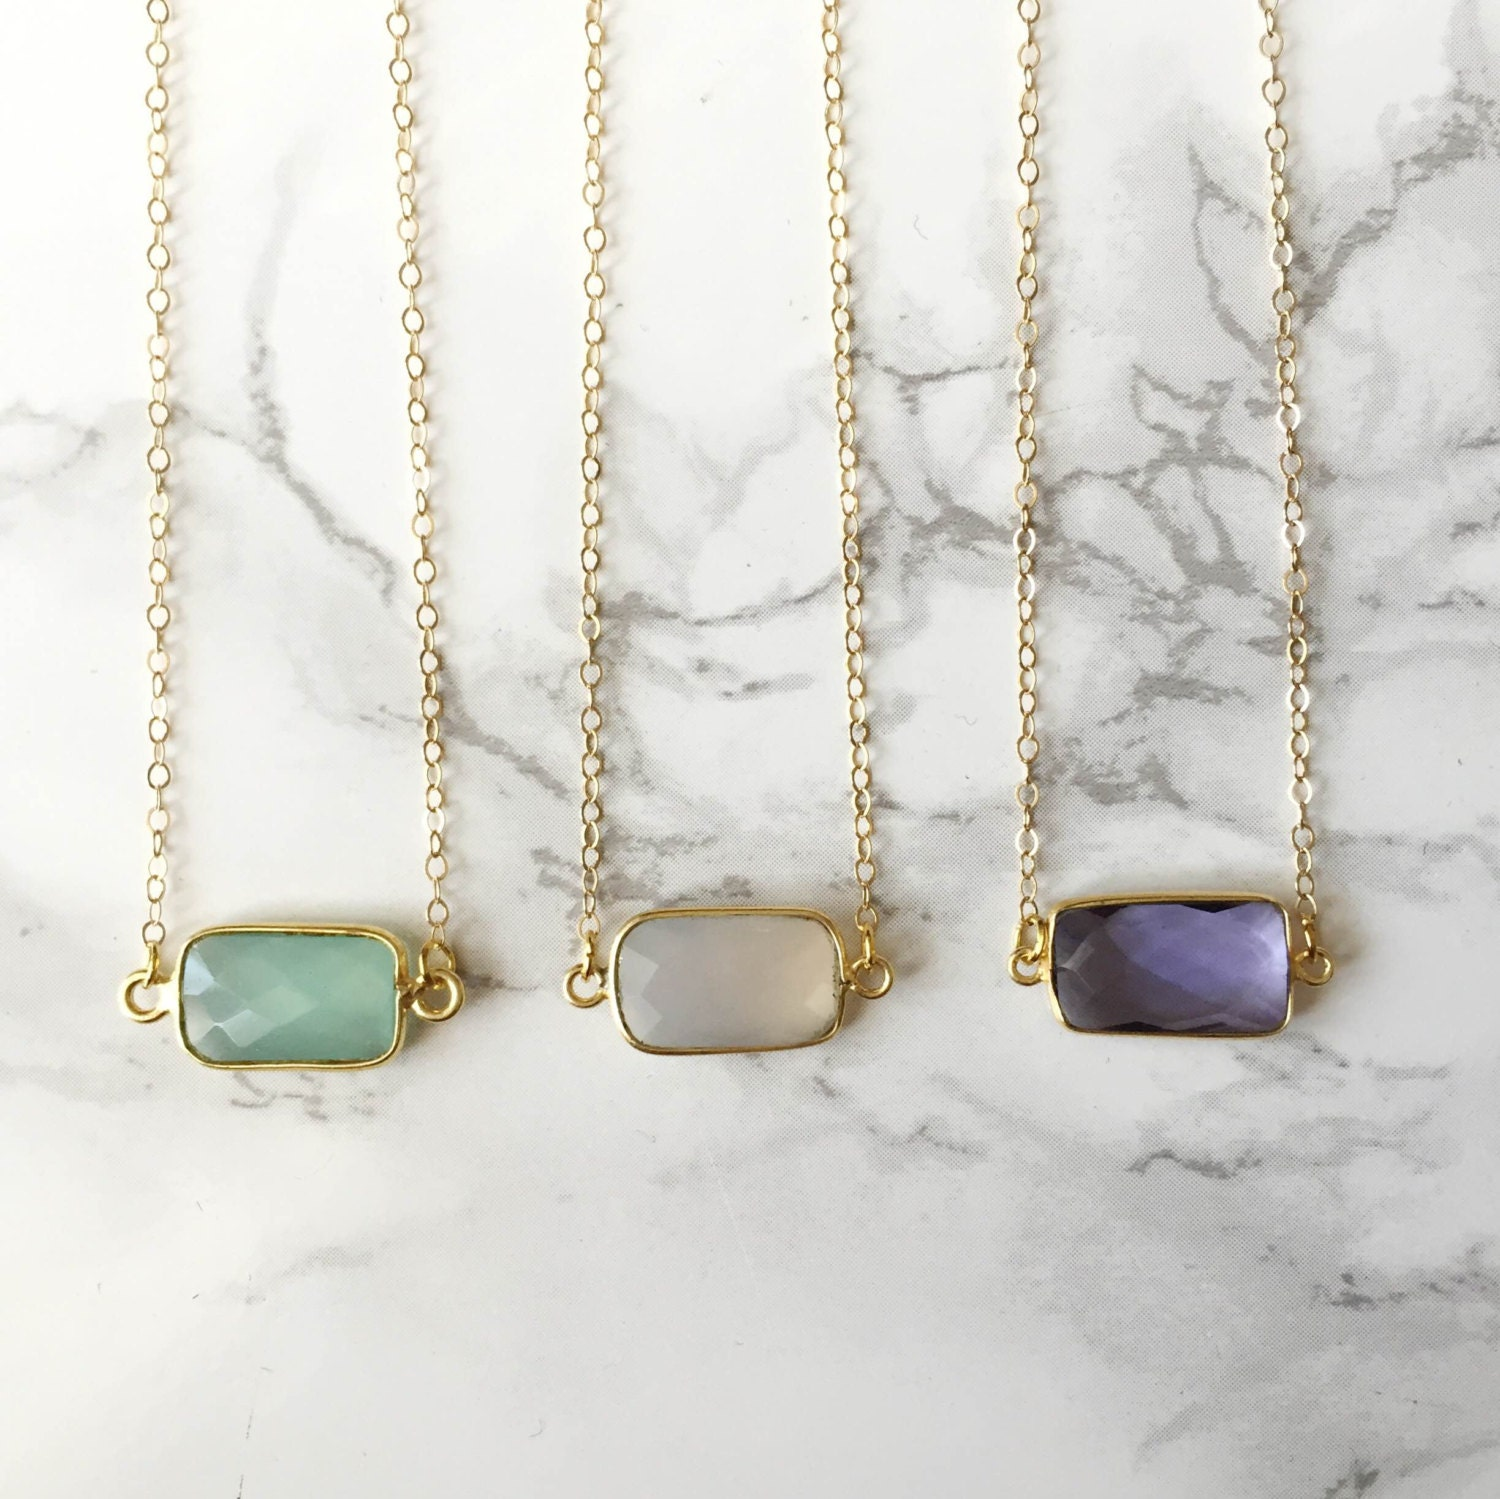 in teacup product chain notonthehighstreet gold a rectangle original com storminateacup necklaces layered storm necklace by double